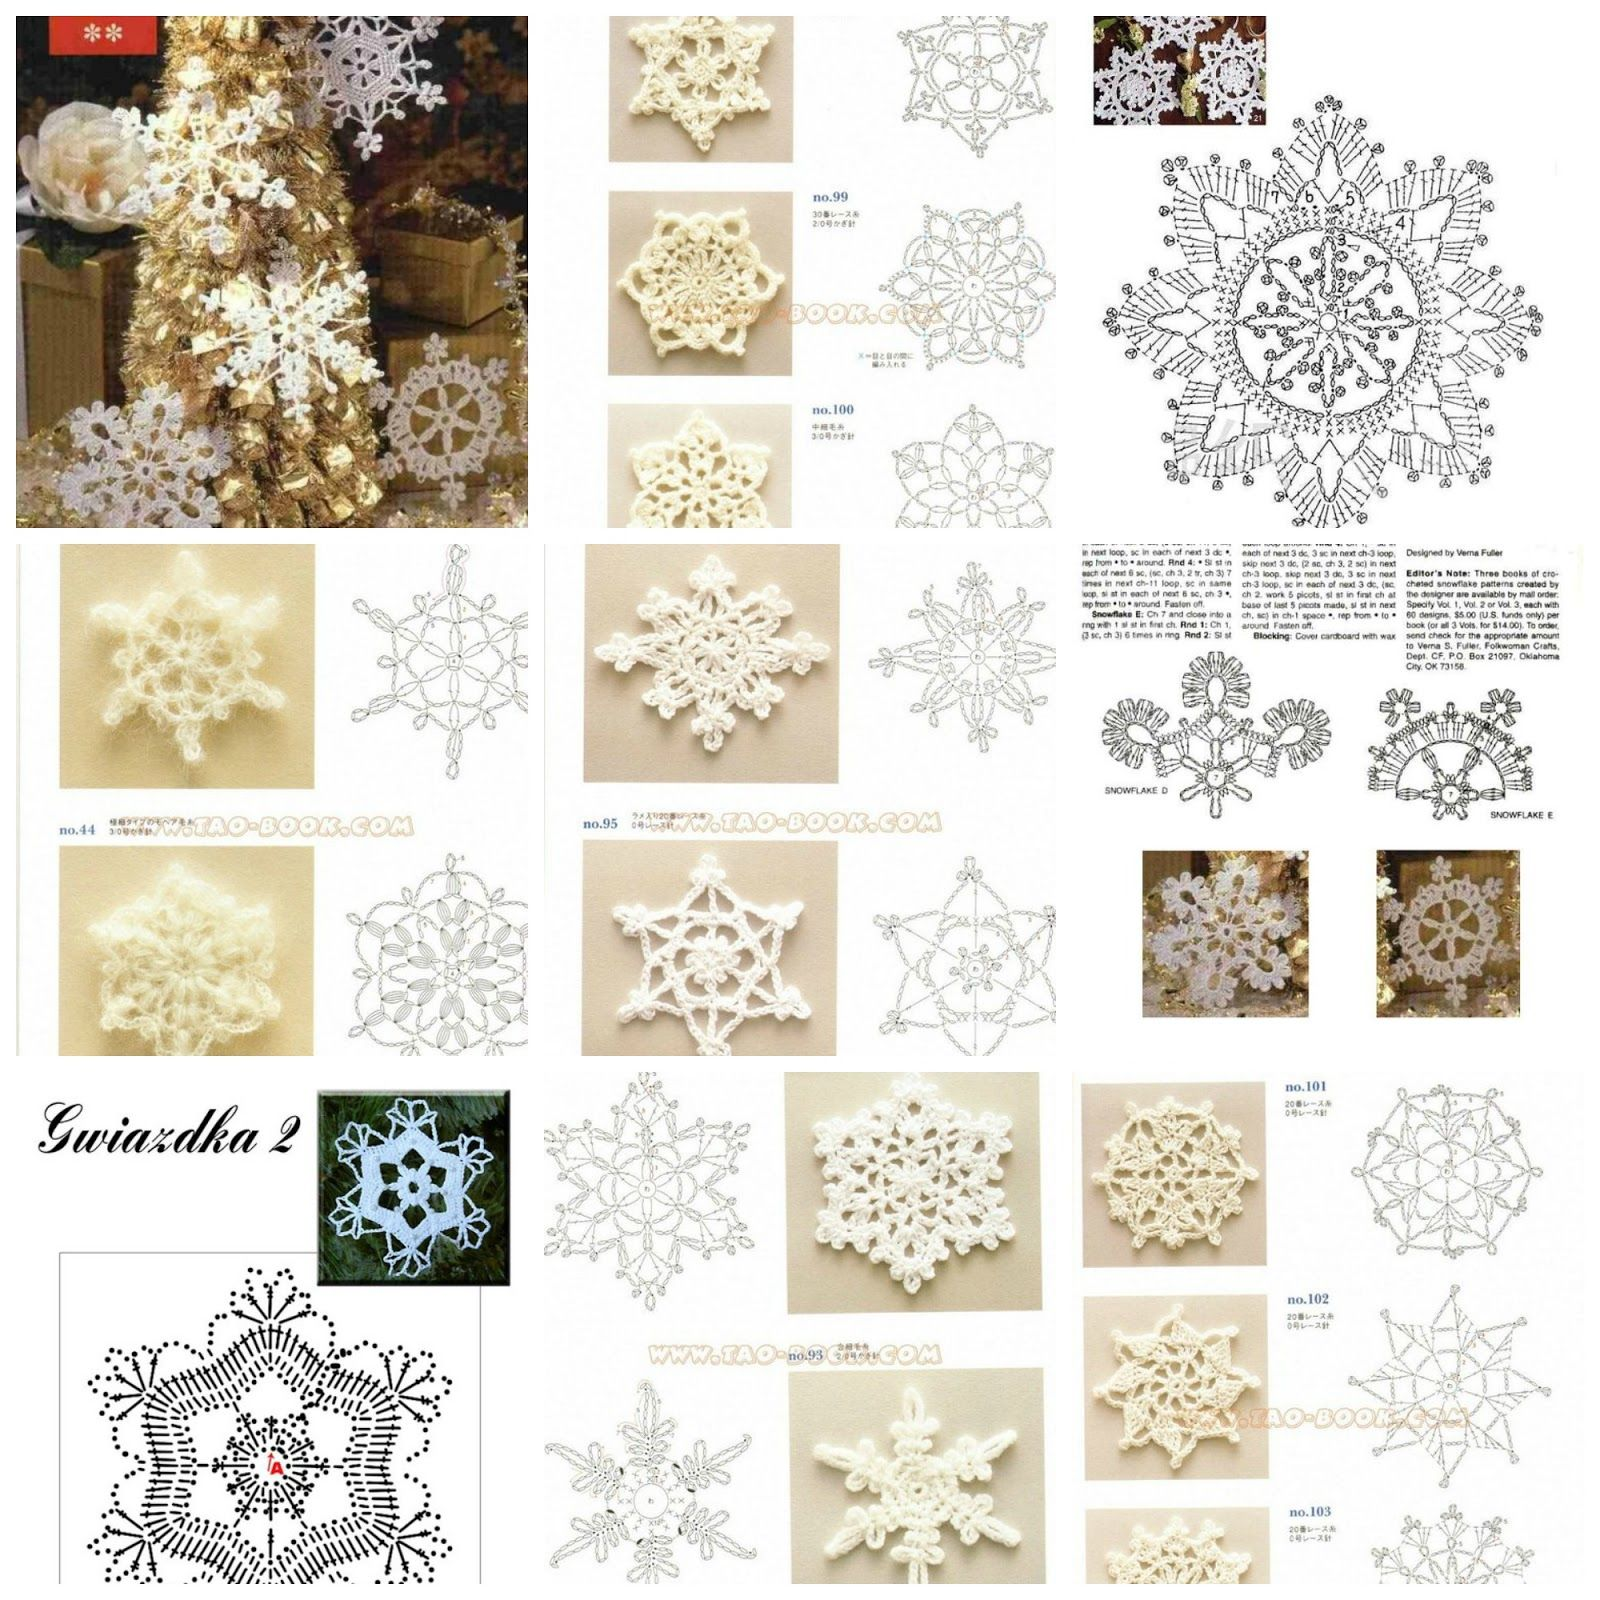 Stitch Diagram Crochet Snowflake Pattern - Electrical Drawing Wiring ...